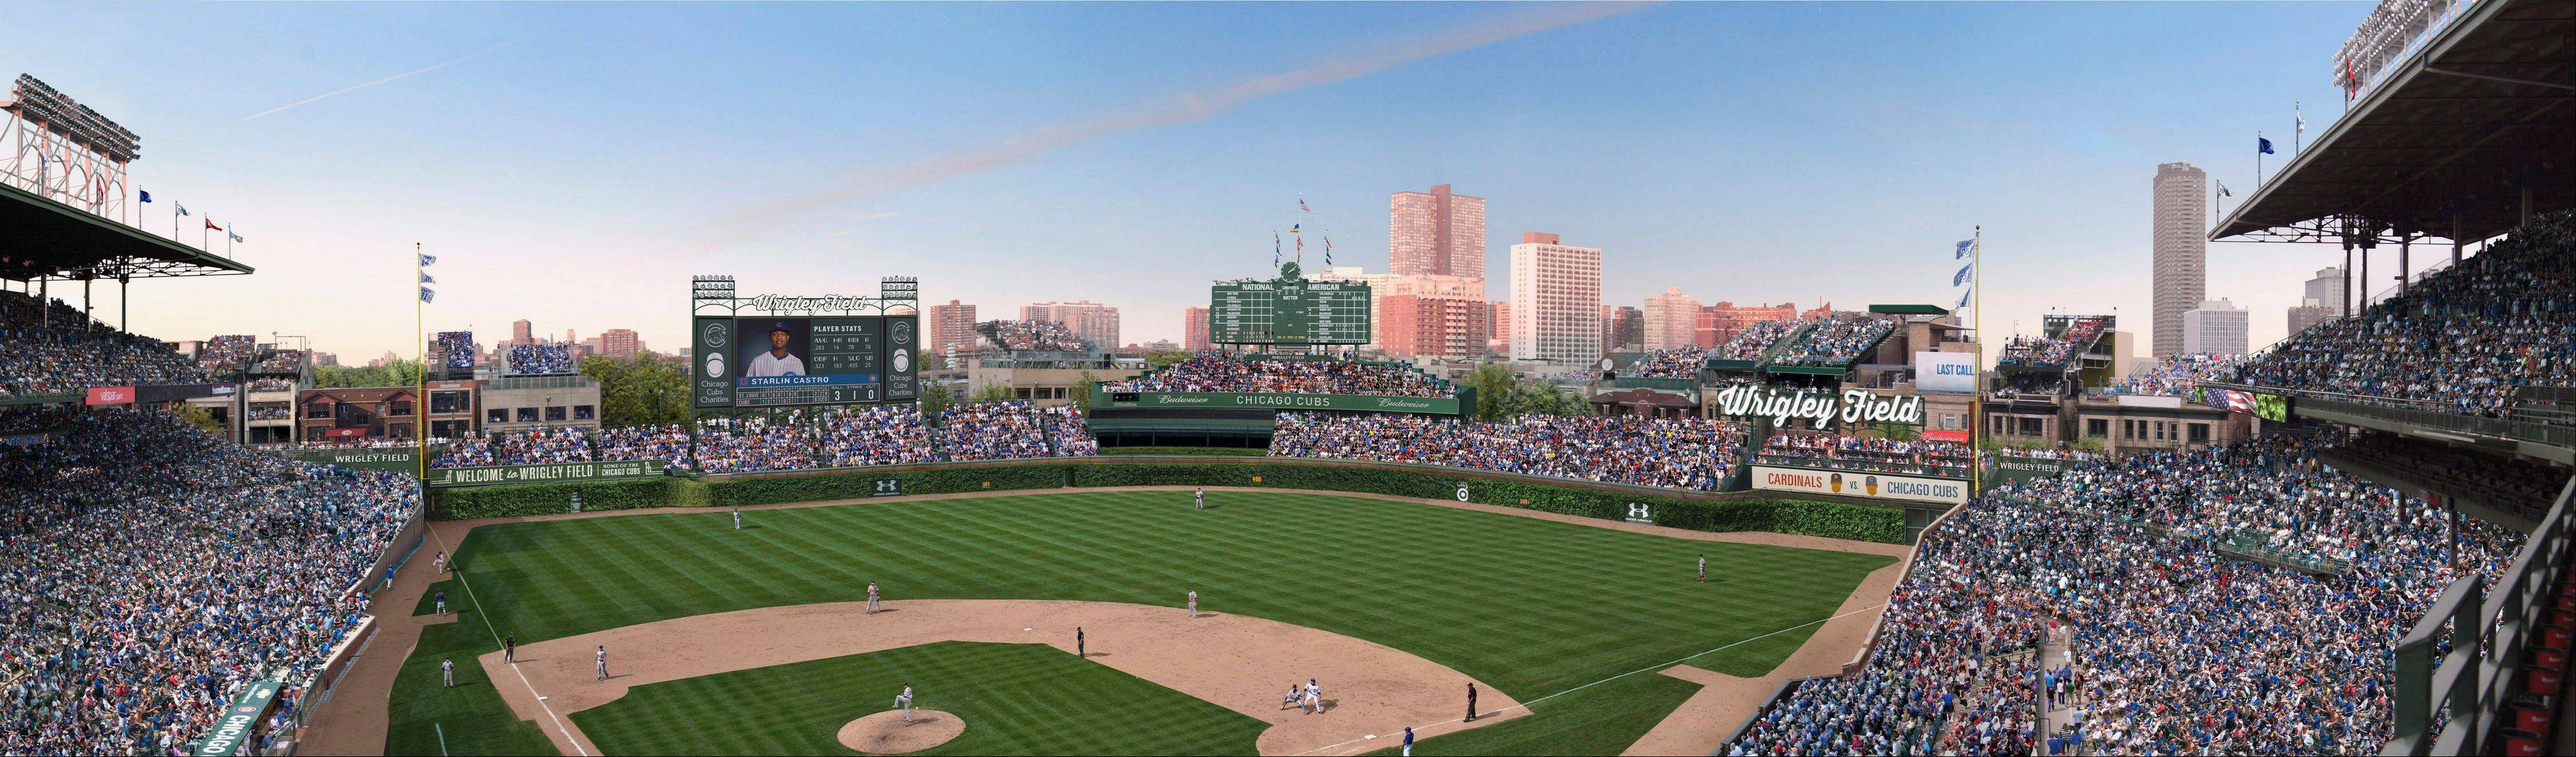 An artist rendering provided showing planned renovations at Wrigley Field. The Cubs said that have reached an agreement with the city that would allow the team to build a Jumbotron in left field while adding another sign in right field.